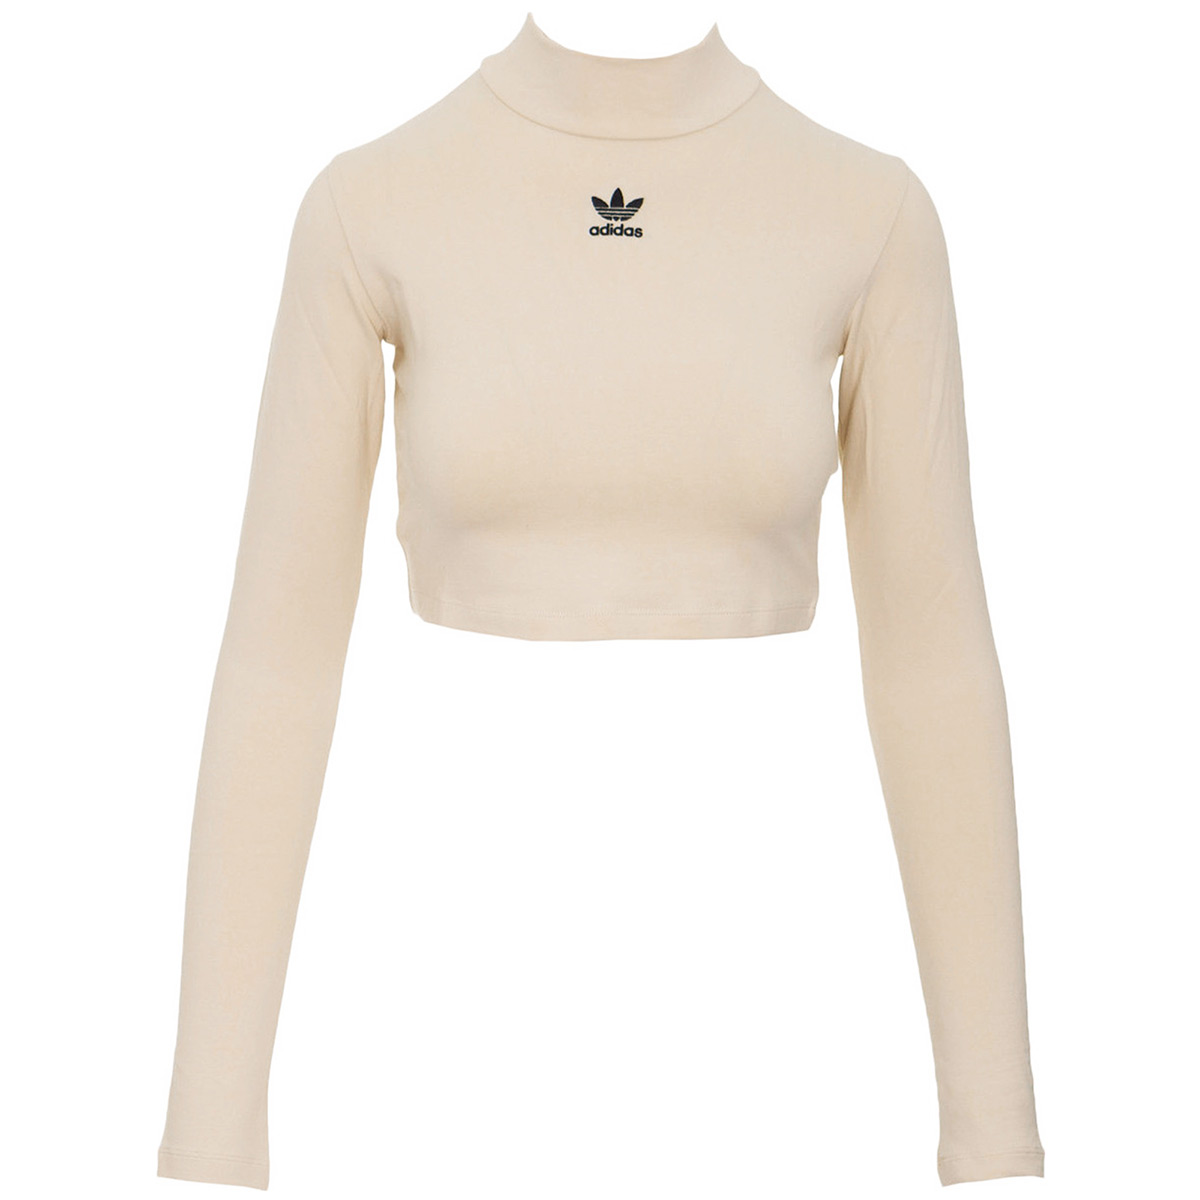 Details about Vêtement T-Shirts adidas femme SC Crop LS Top